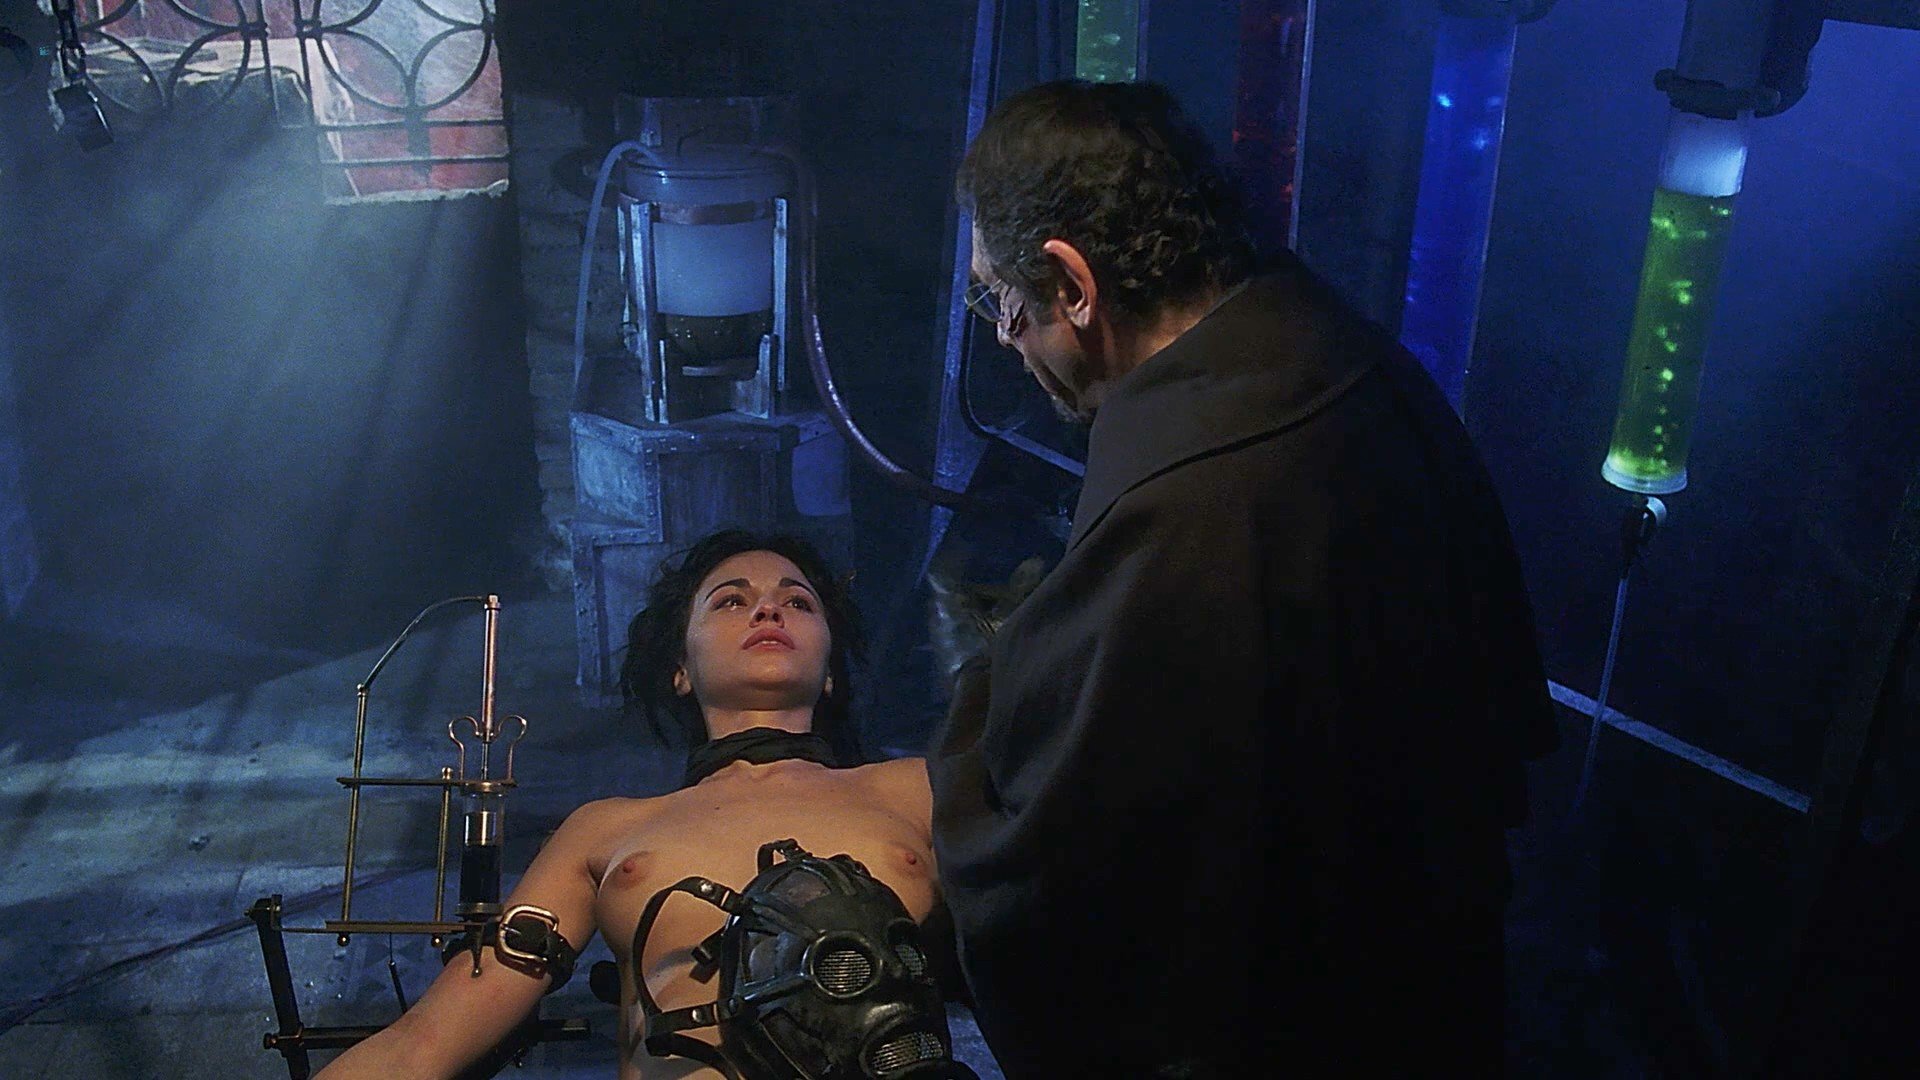 Romina Mondello nude sex and Valery Valmond nude hot sex too - The Wax Mask (1997) 1080p BluRay (3)